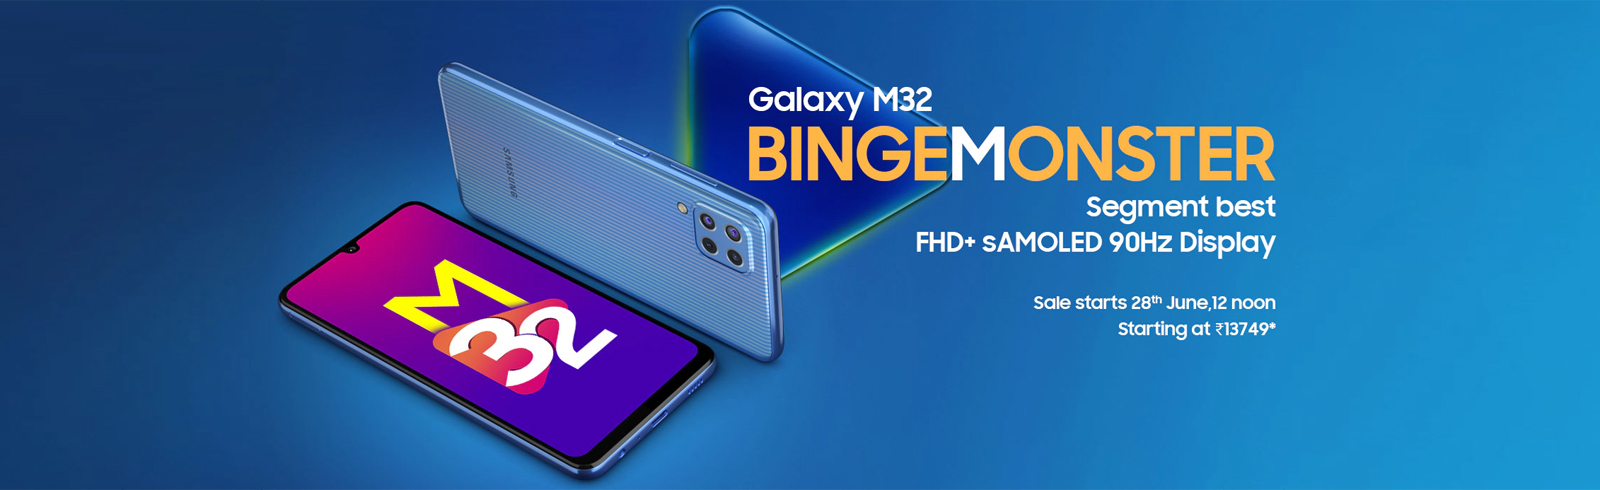 The Samsung Galaxy M32 goes official in India with an sAMOLED display, 90Hz refesh rate, Helio G80 chipset